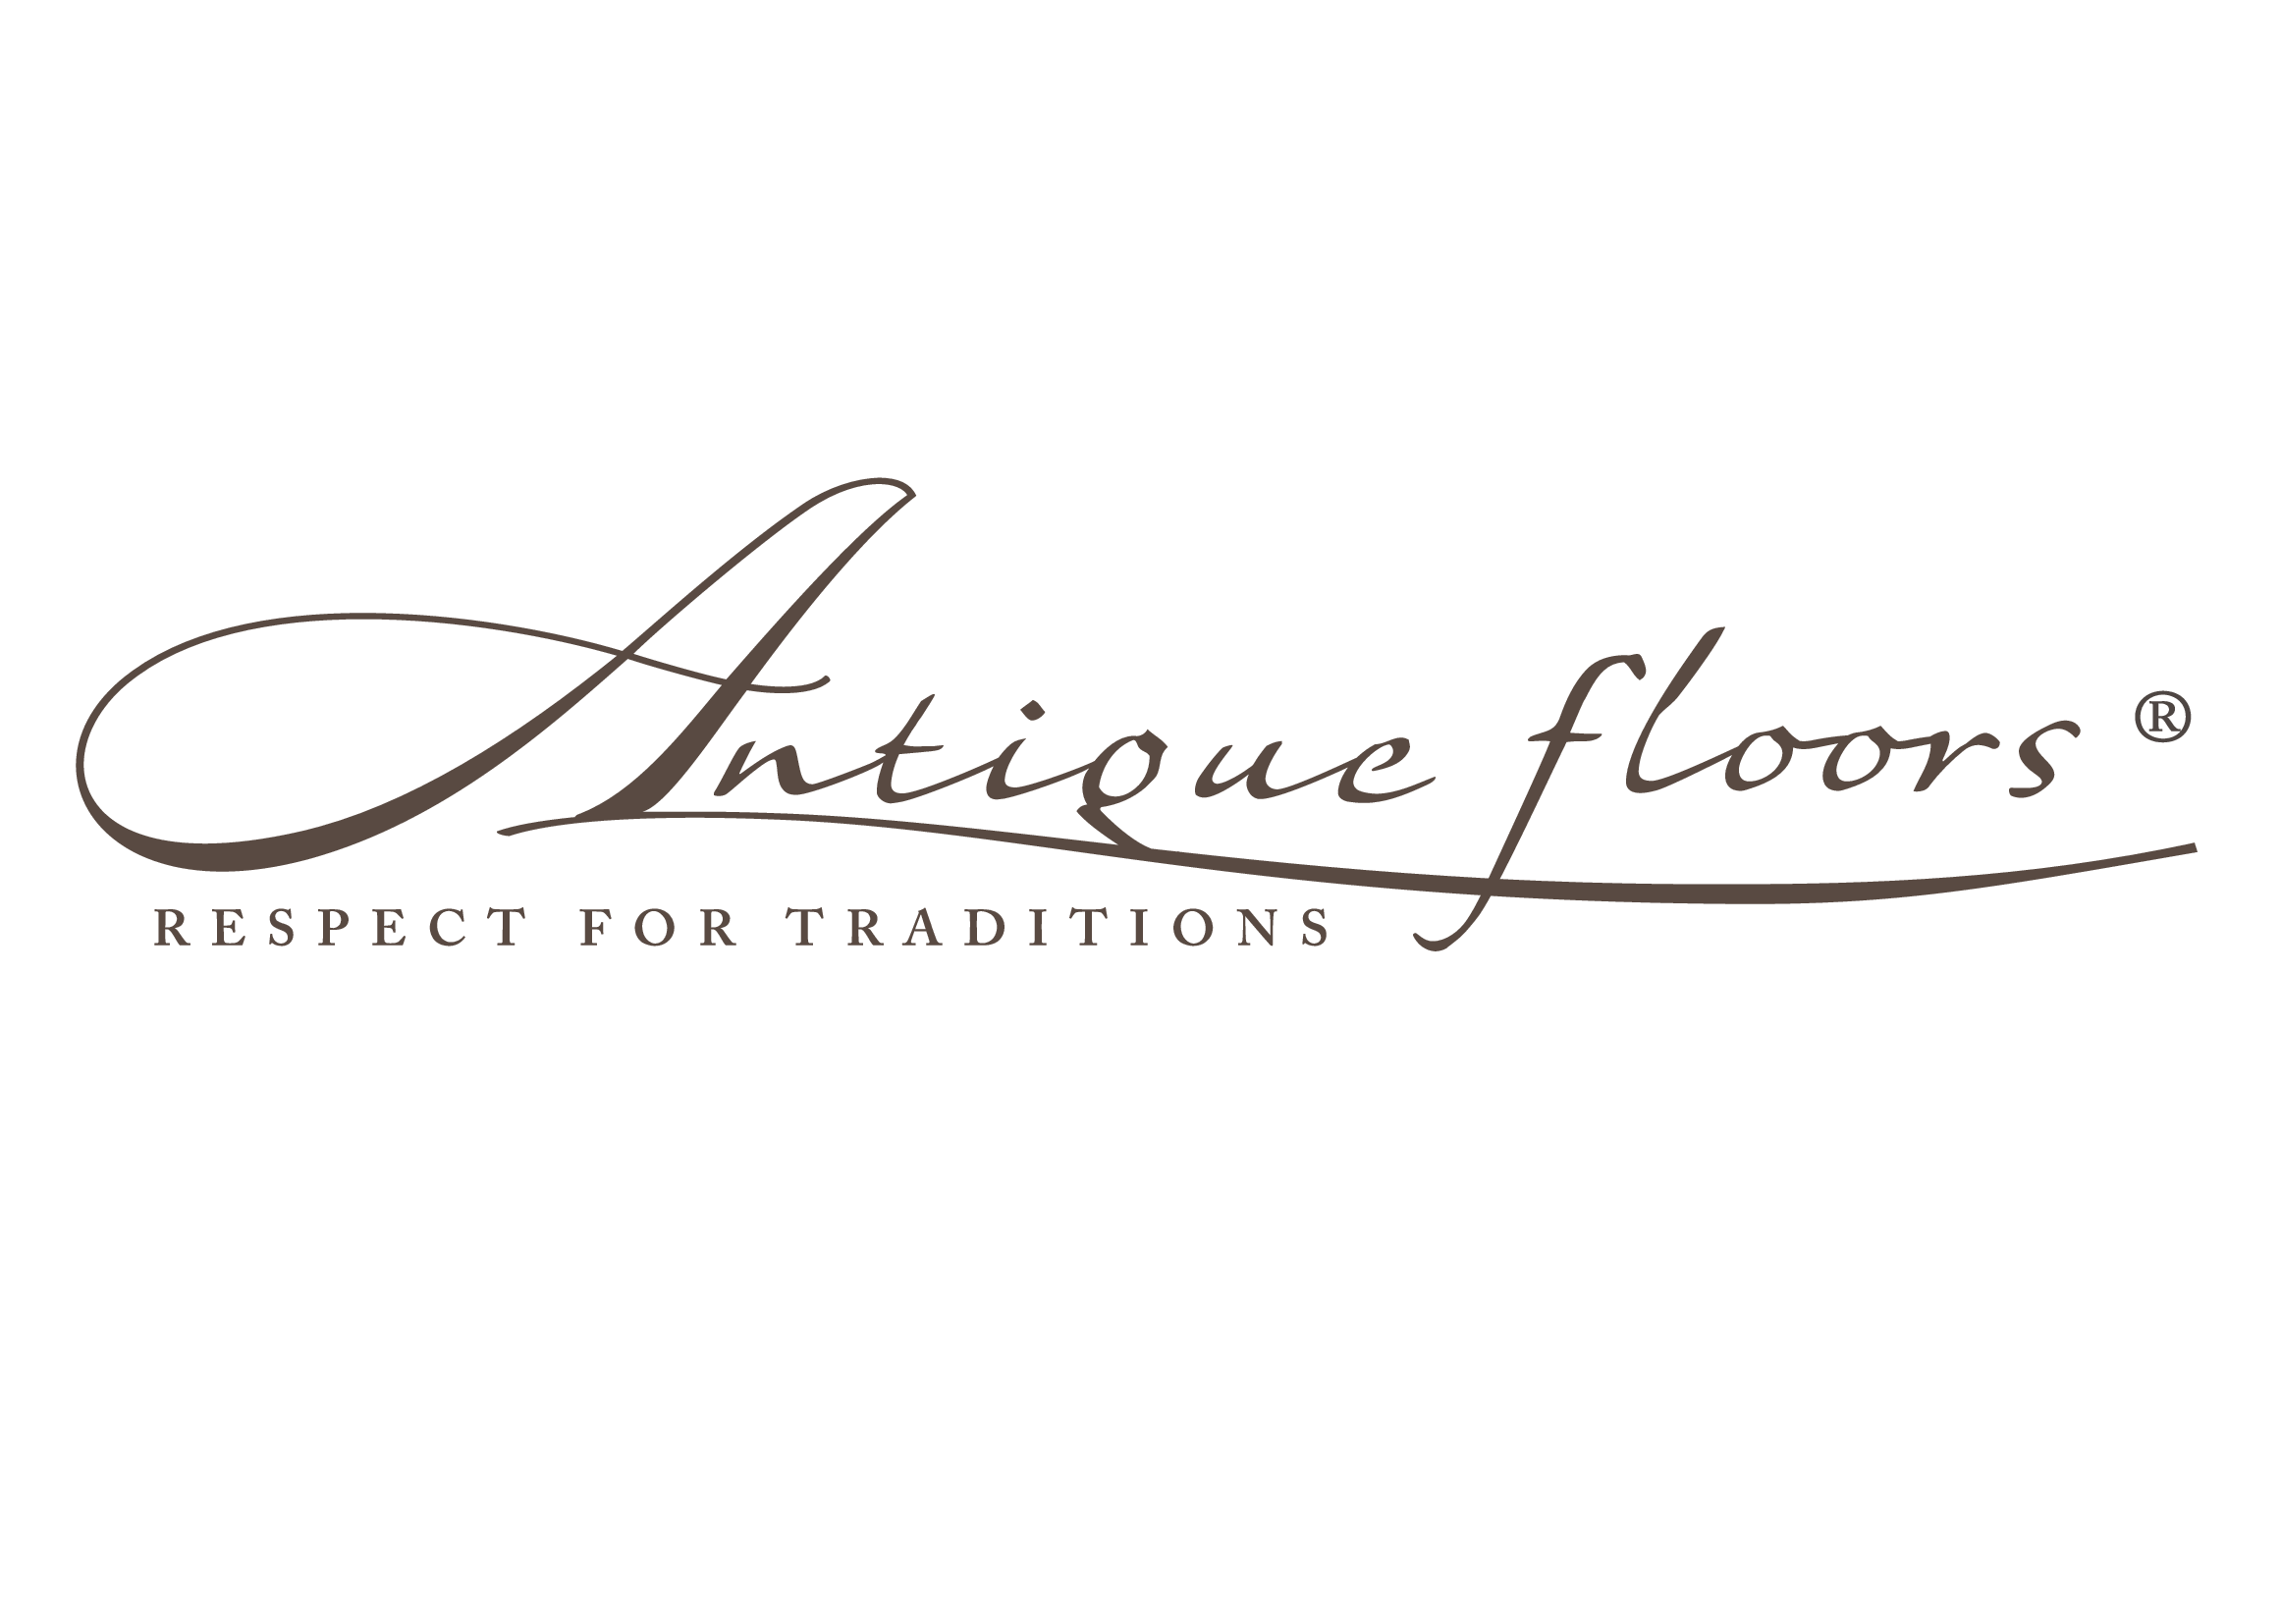 Antique floors